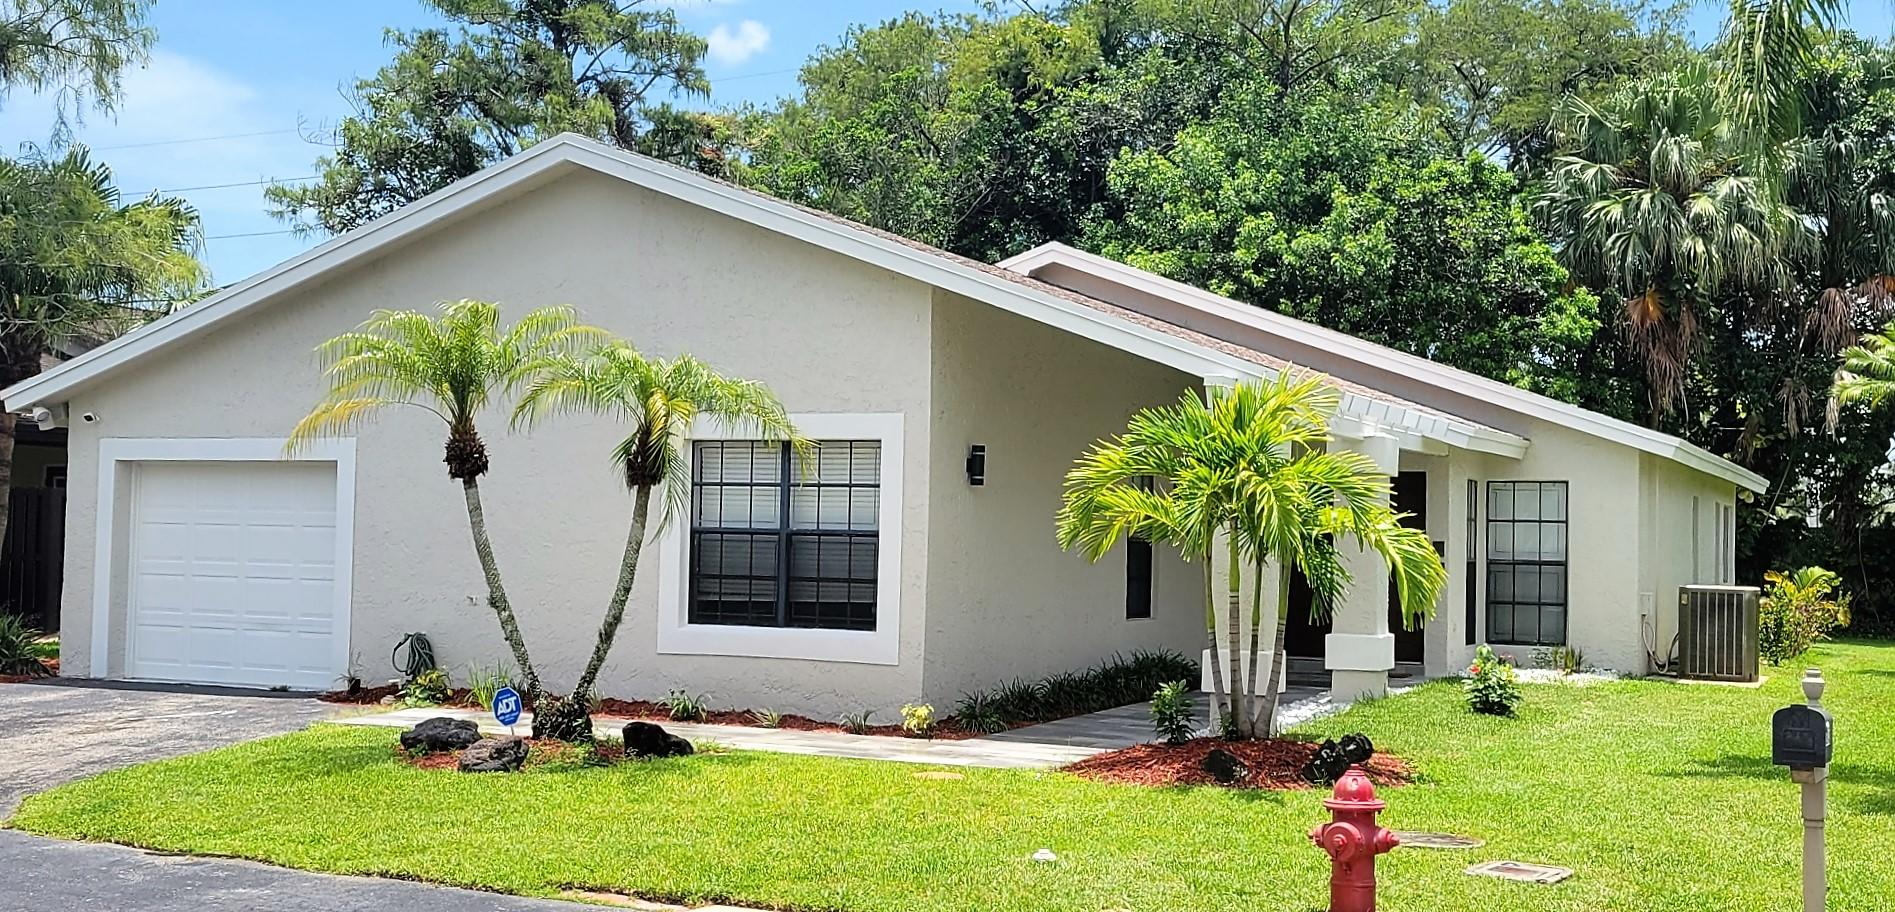 8943  Old Pine Road 16 For Sale 10730055, FL